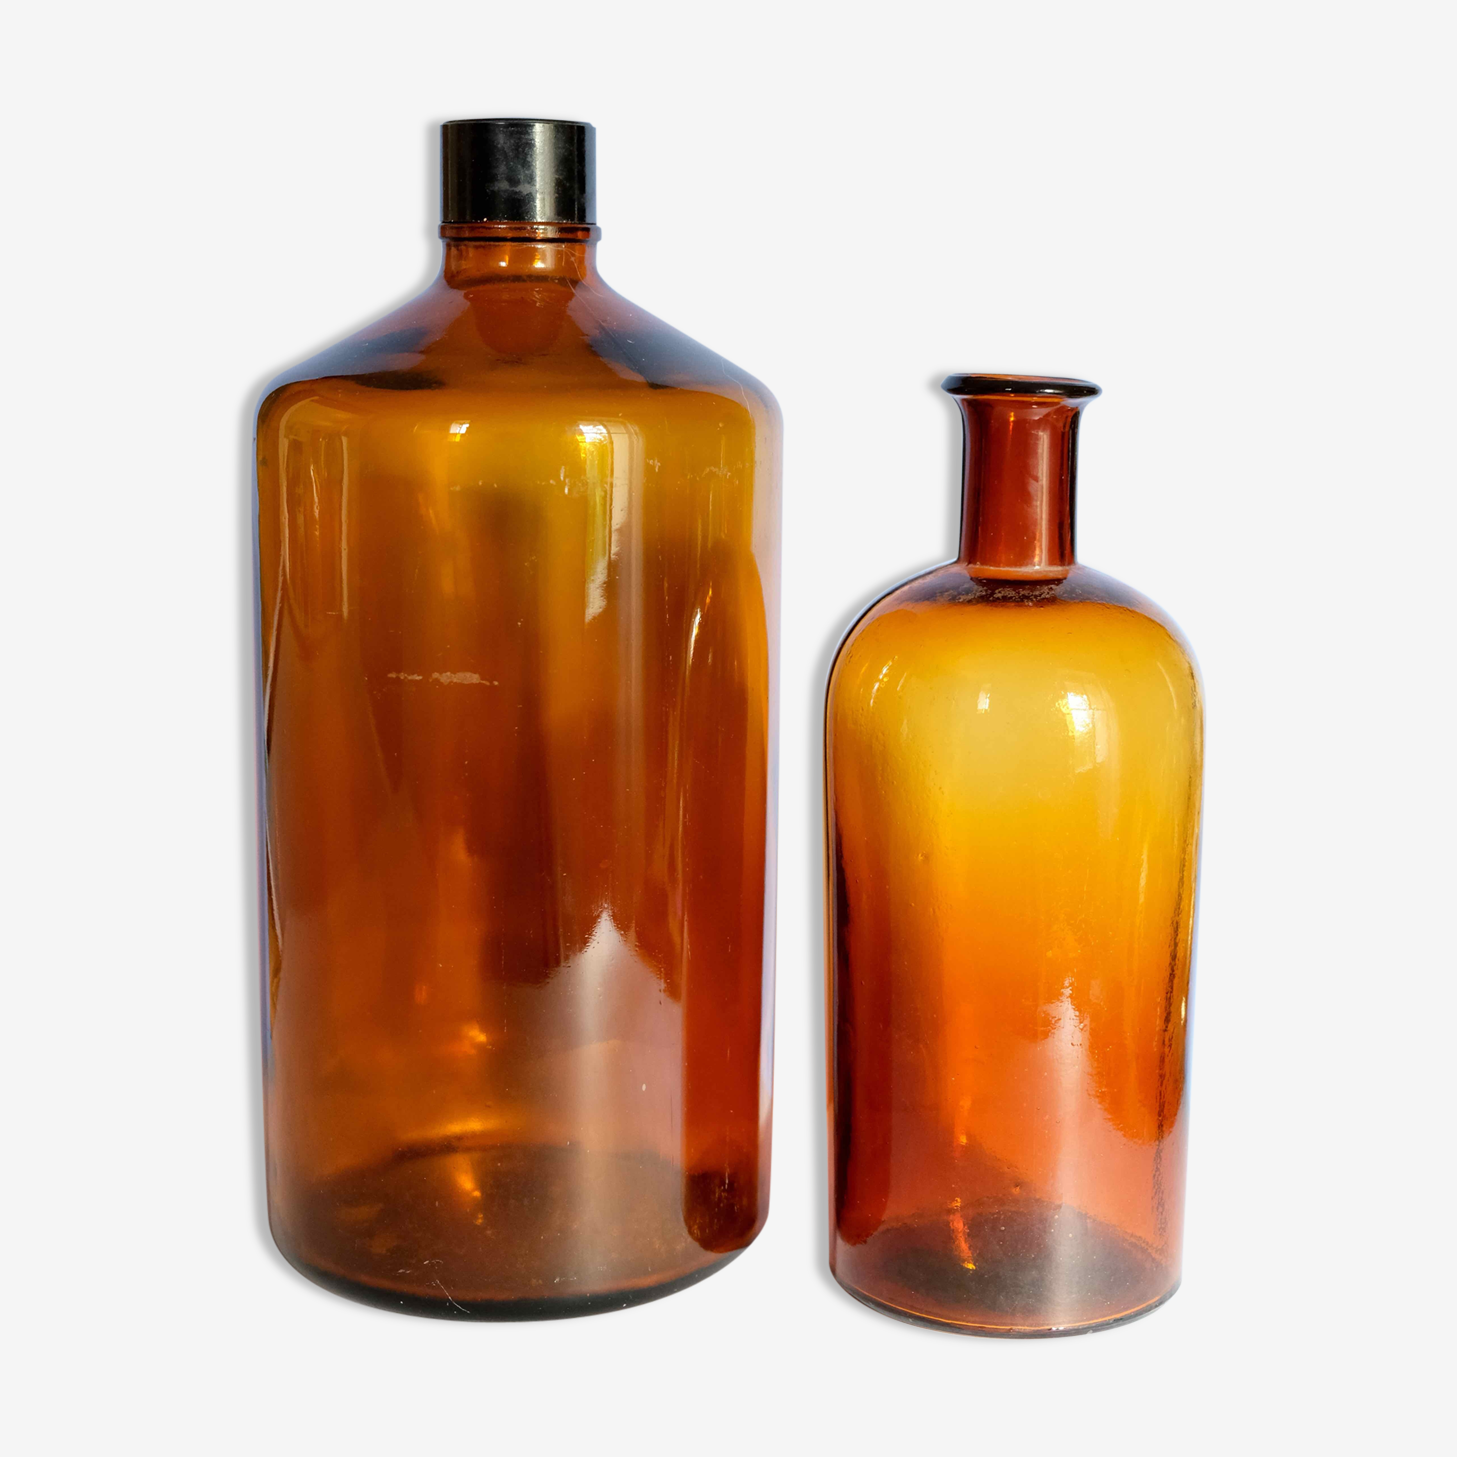 Set of apothecary vials made of thick amber glass